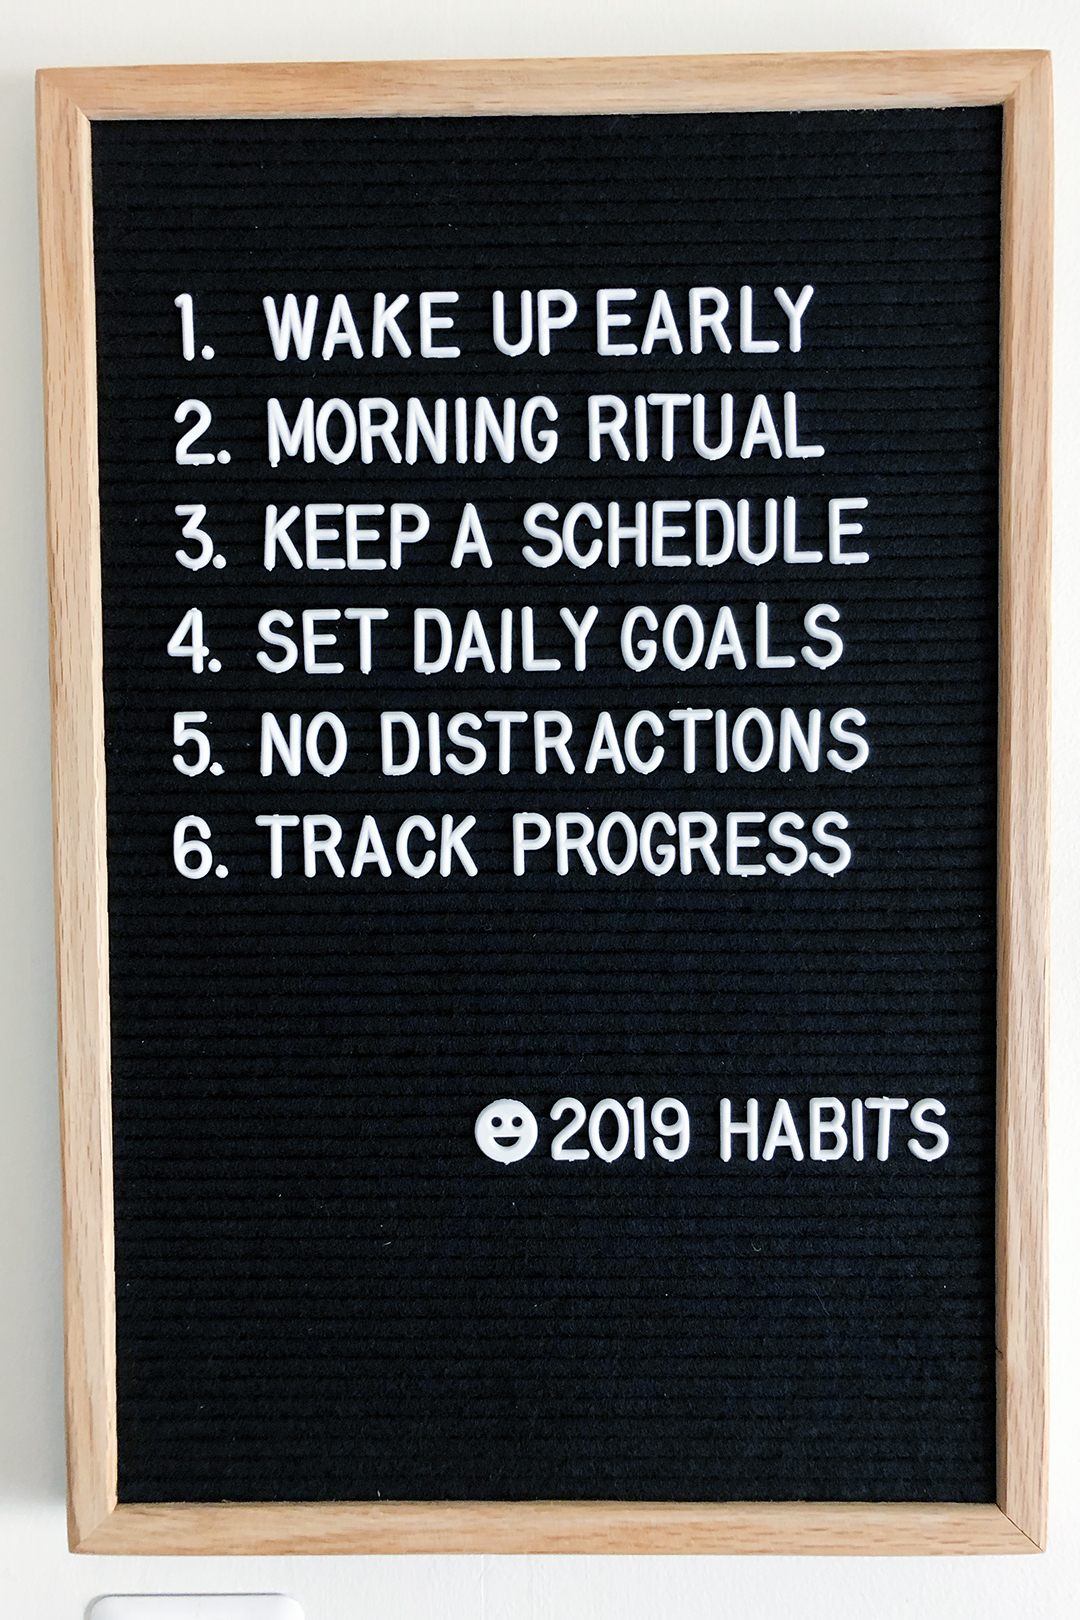 My 2019 habits that are posted on the letterboard in my studio.